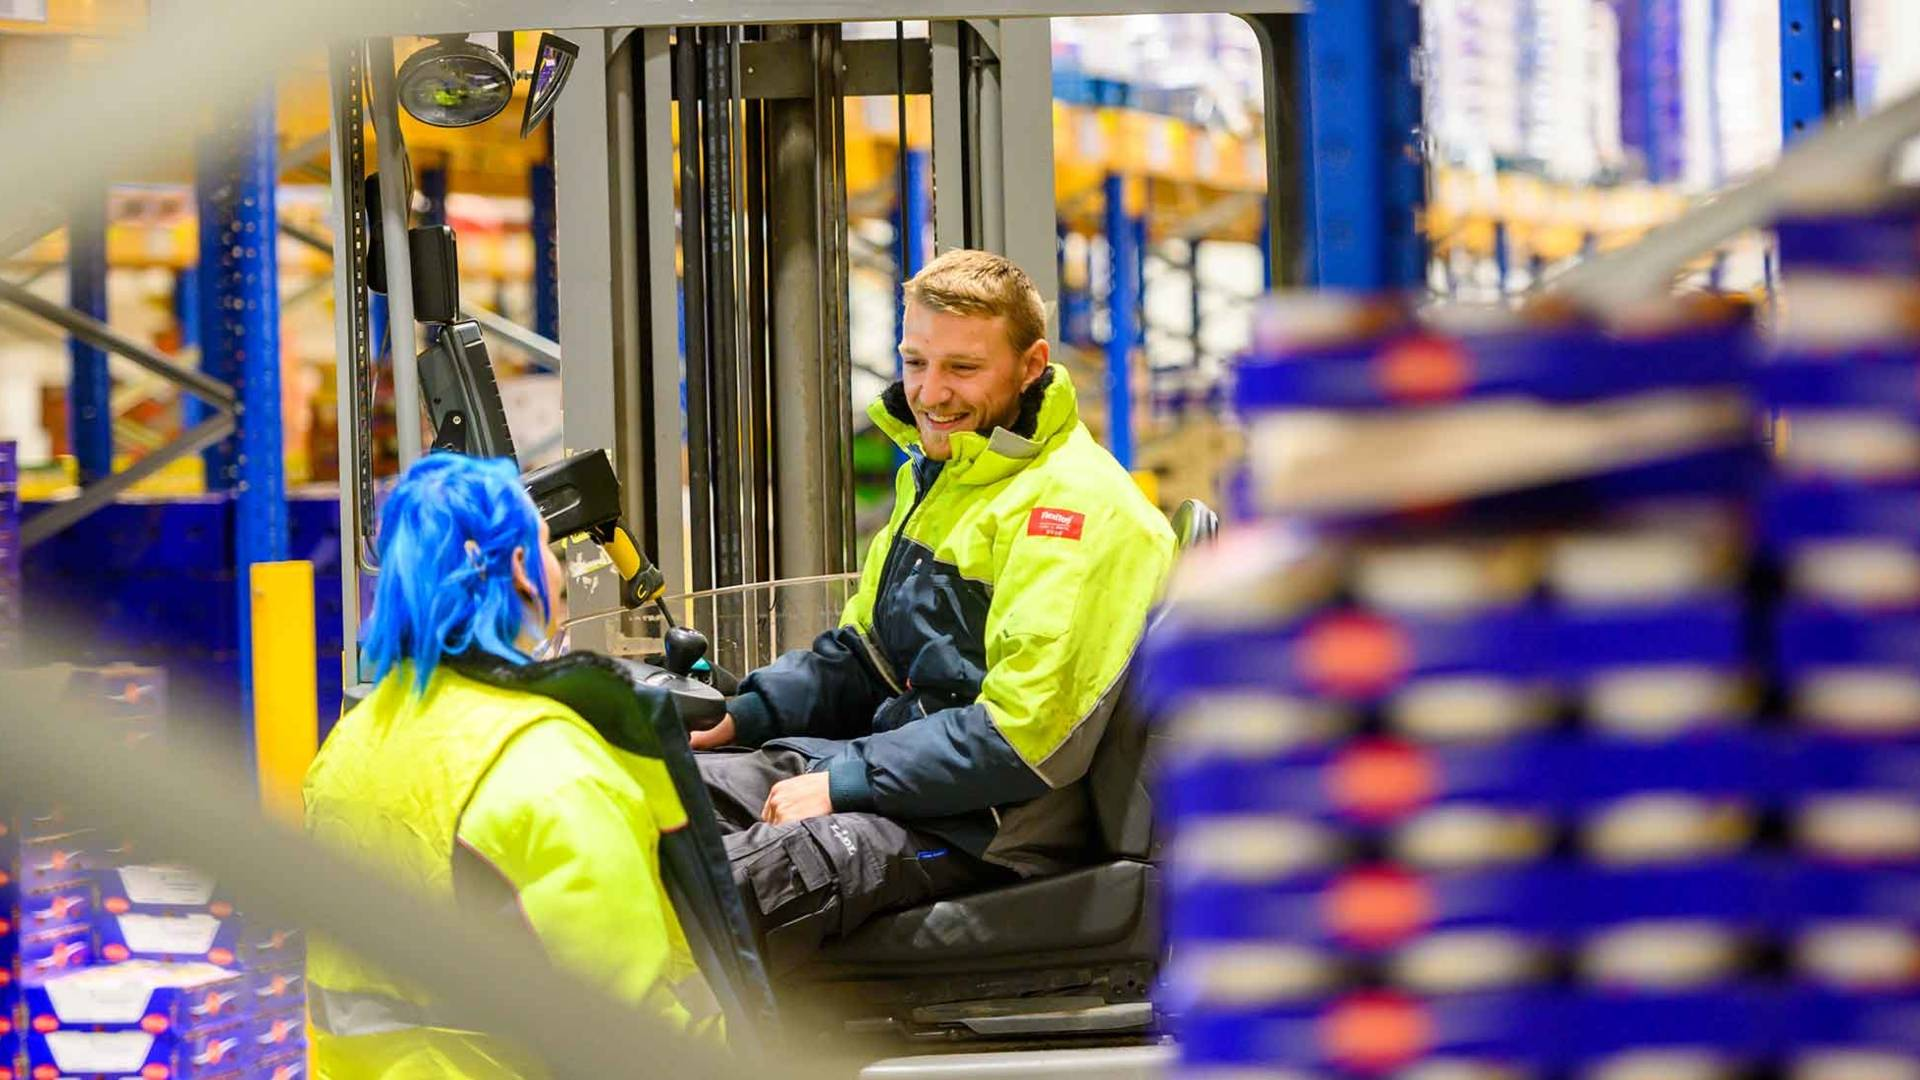 Warehouse Operative careers at Lidl